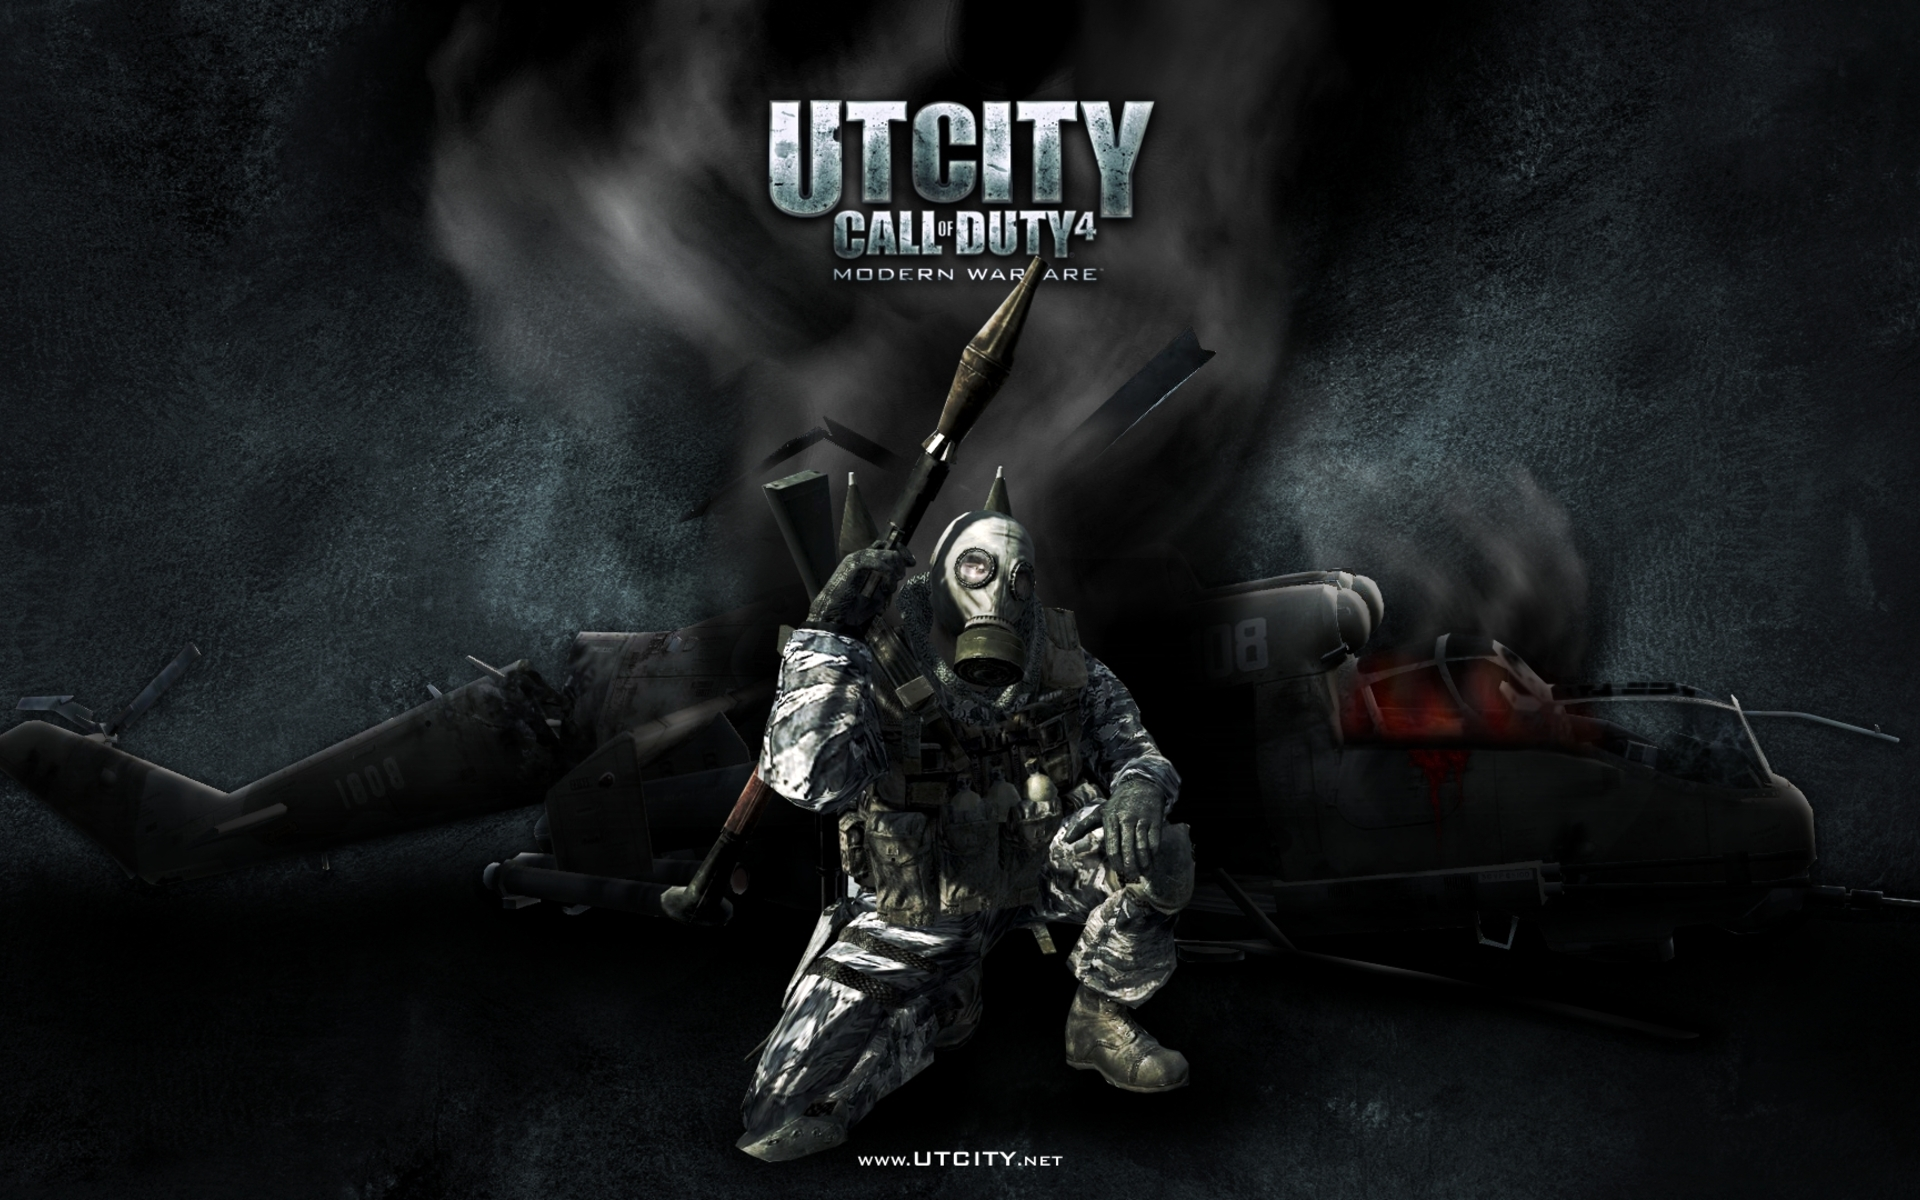 Call Of Duty Modern Warfare Ut City Wallpapers Call Of Duty 4 551808 Hd Wallpaper Backgrounds Download